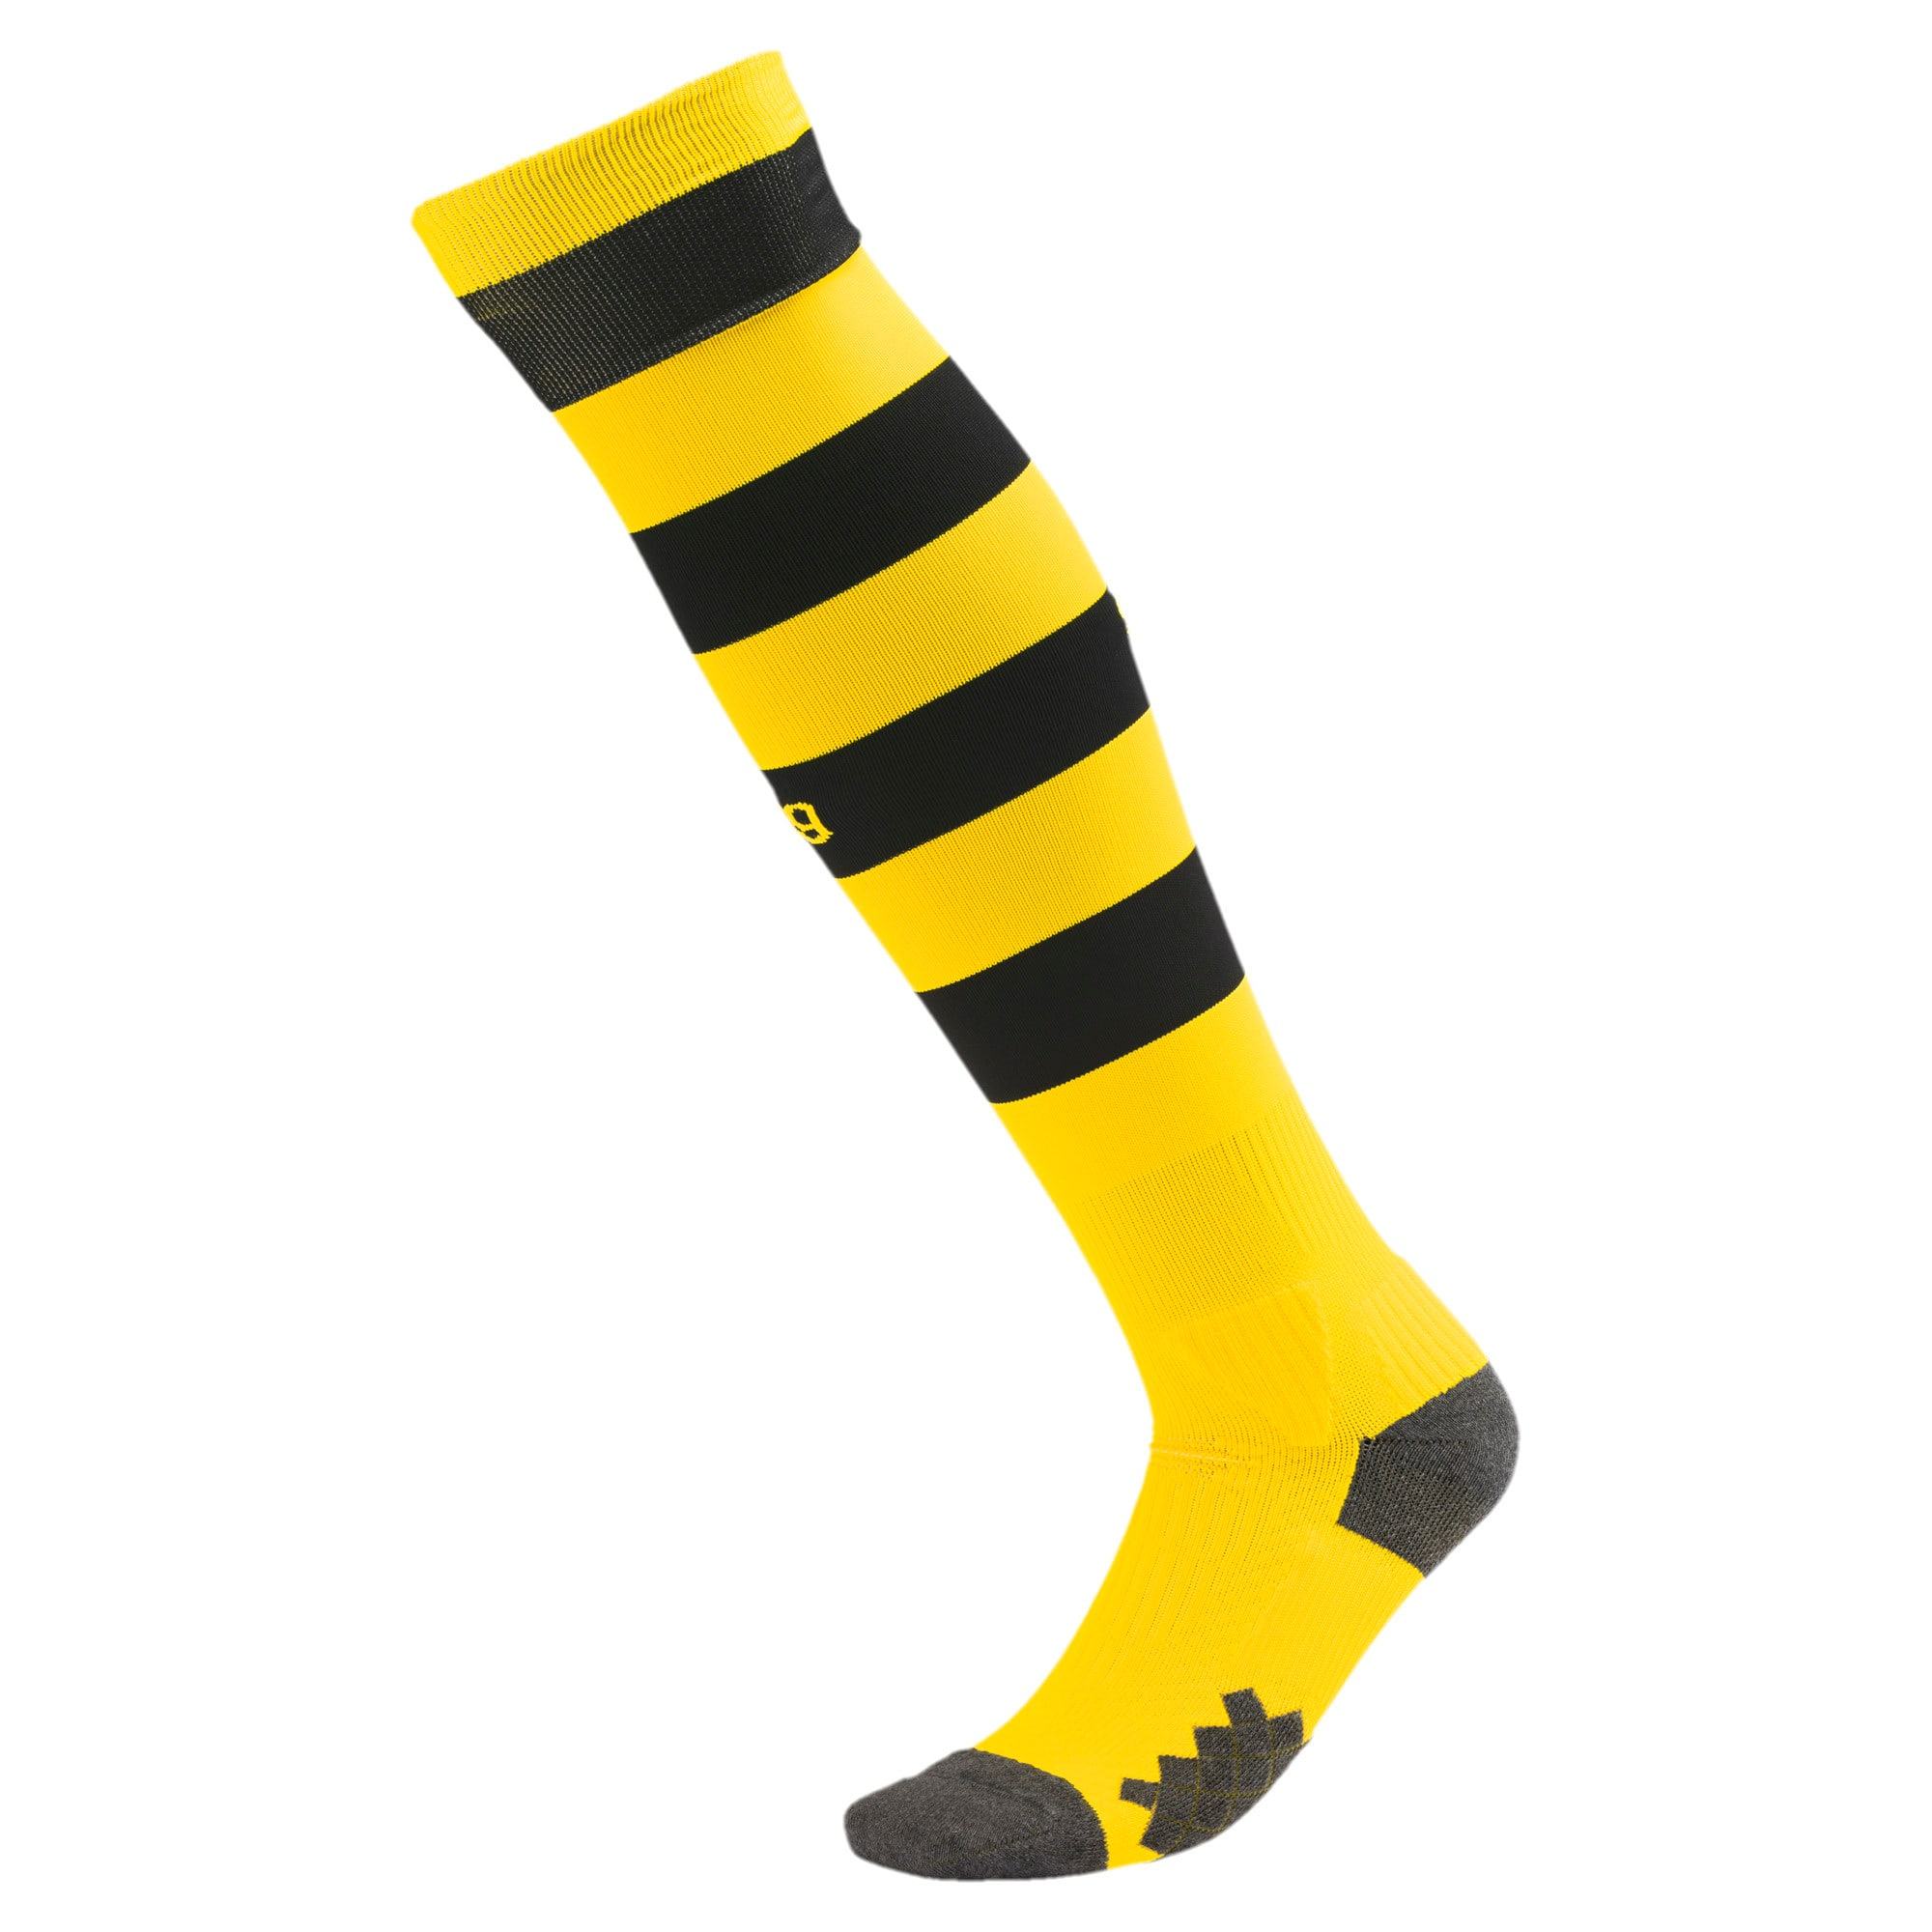 Thumbnail 1 of BVB Herren Gestreifte Socken, Cyber Yellow-Puma Black, medium